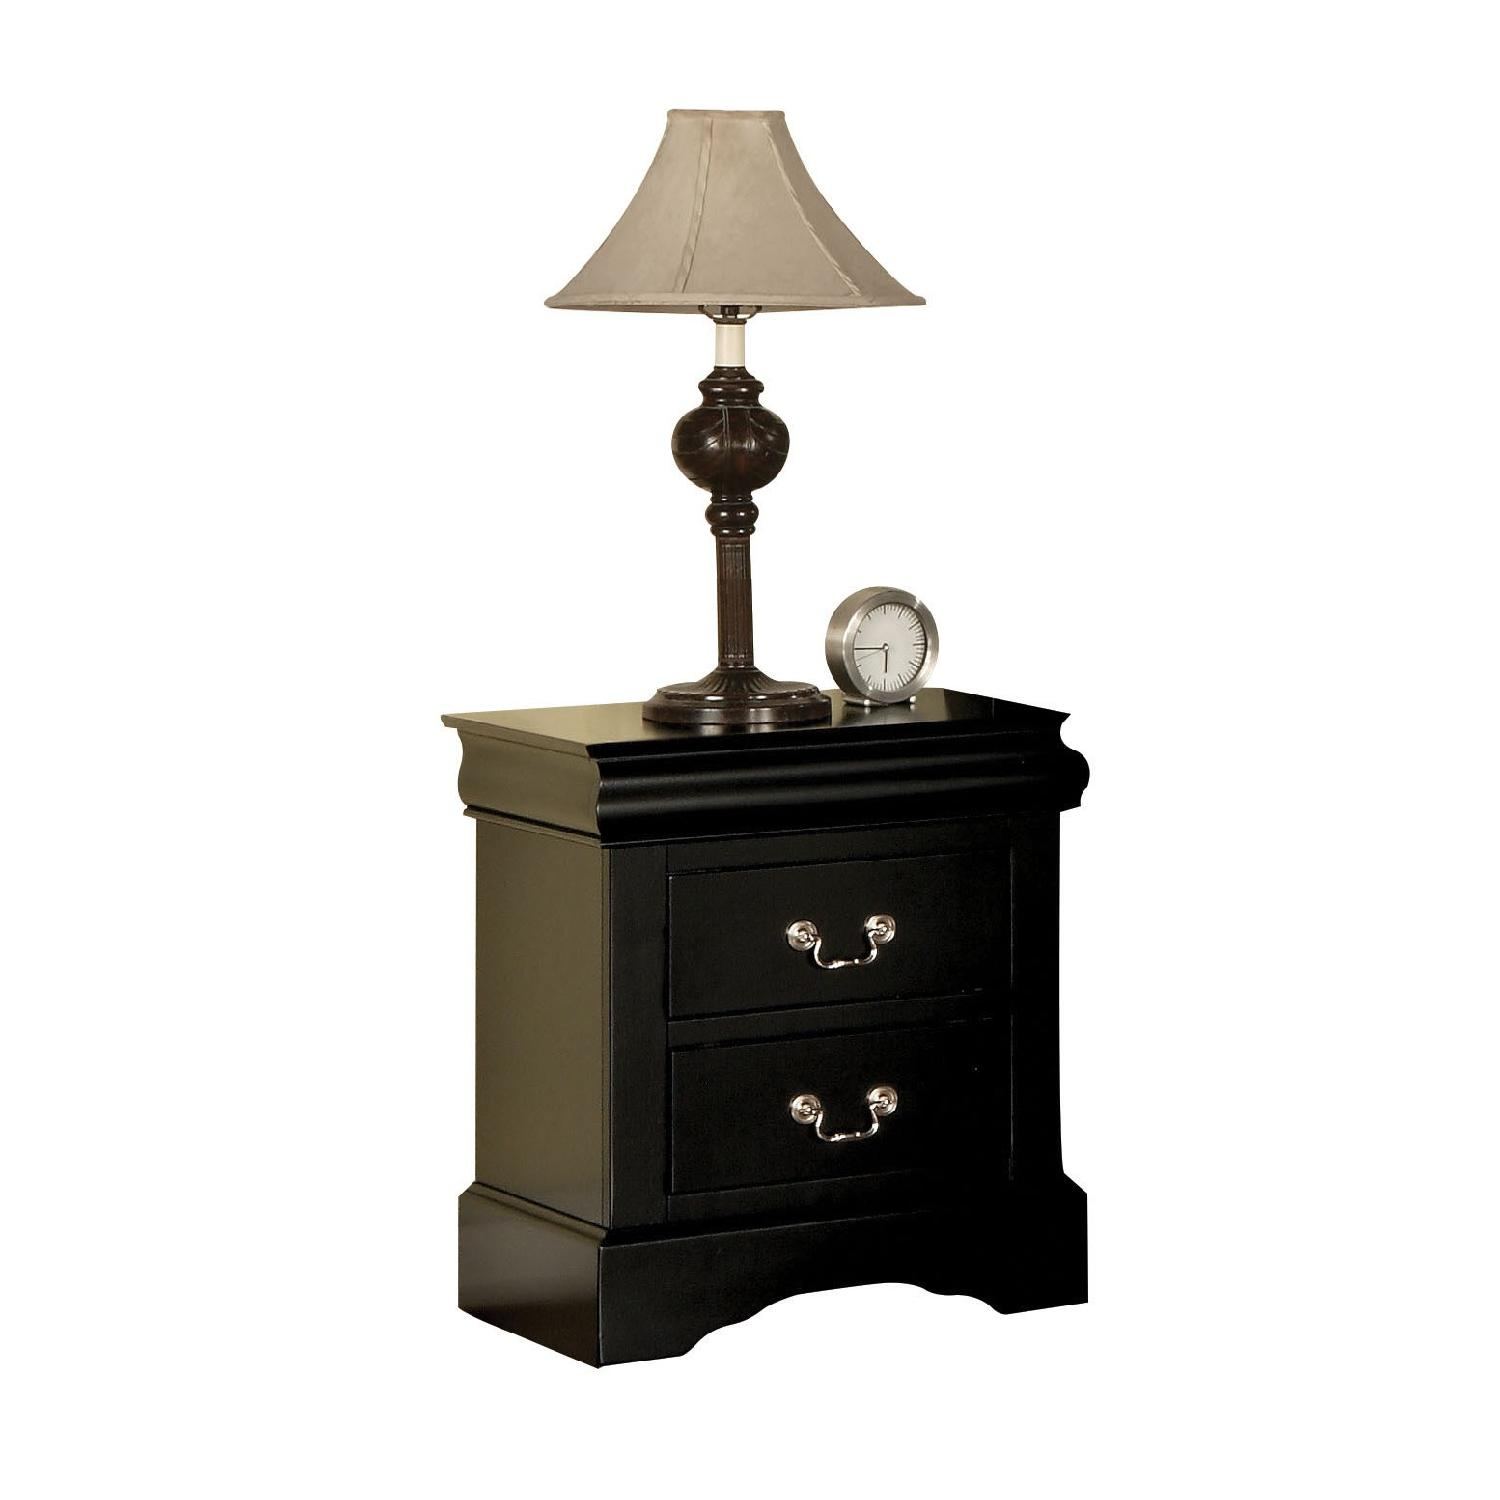 Louis Philippe Style Nightstand in Black Finish - image-1